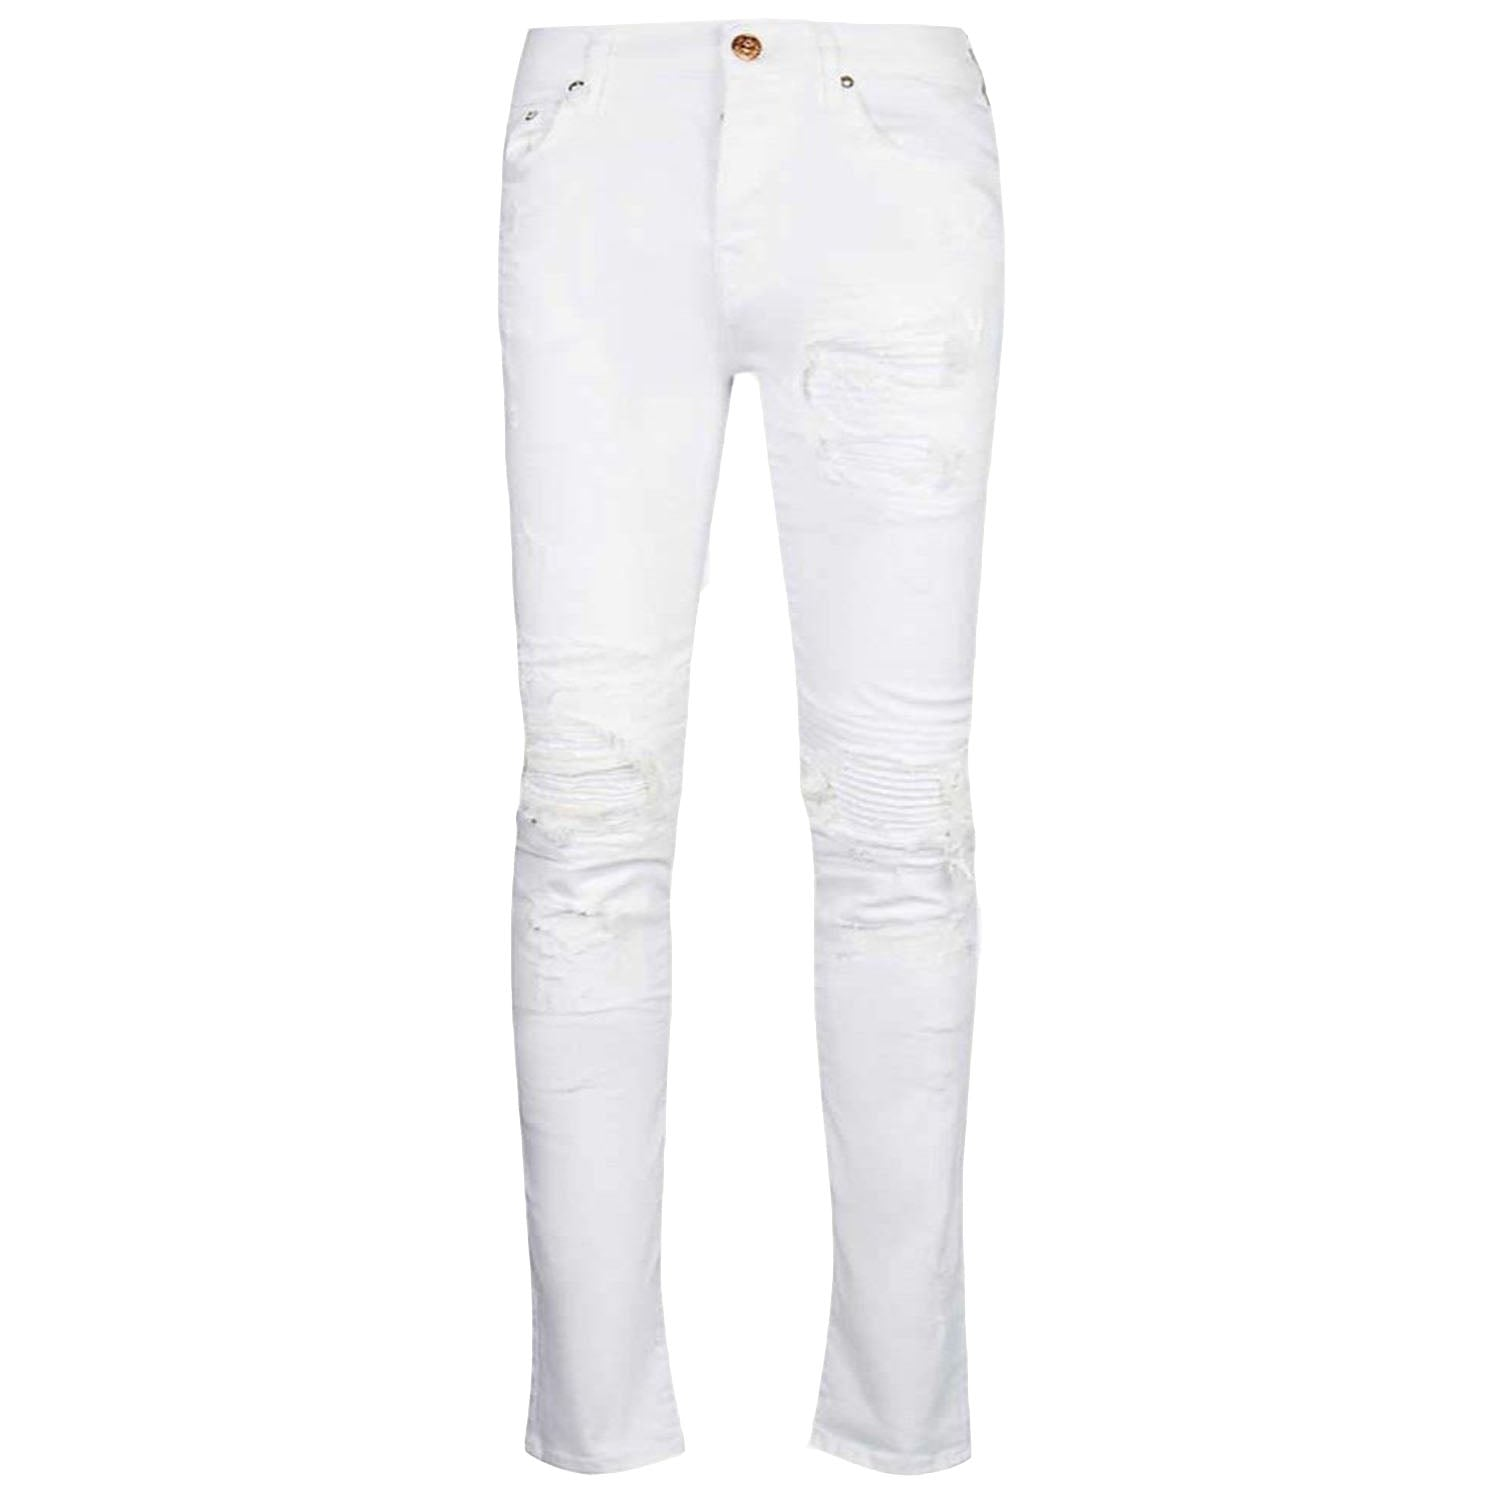 True Religion New Rocco White Jeans